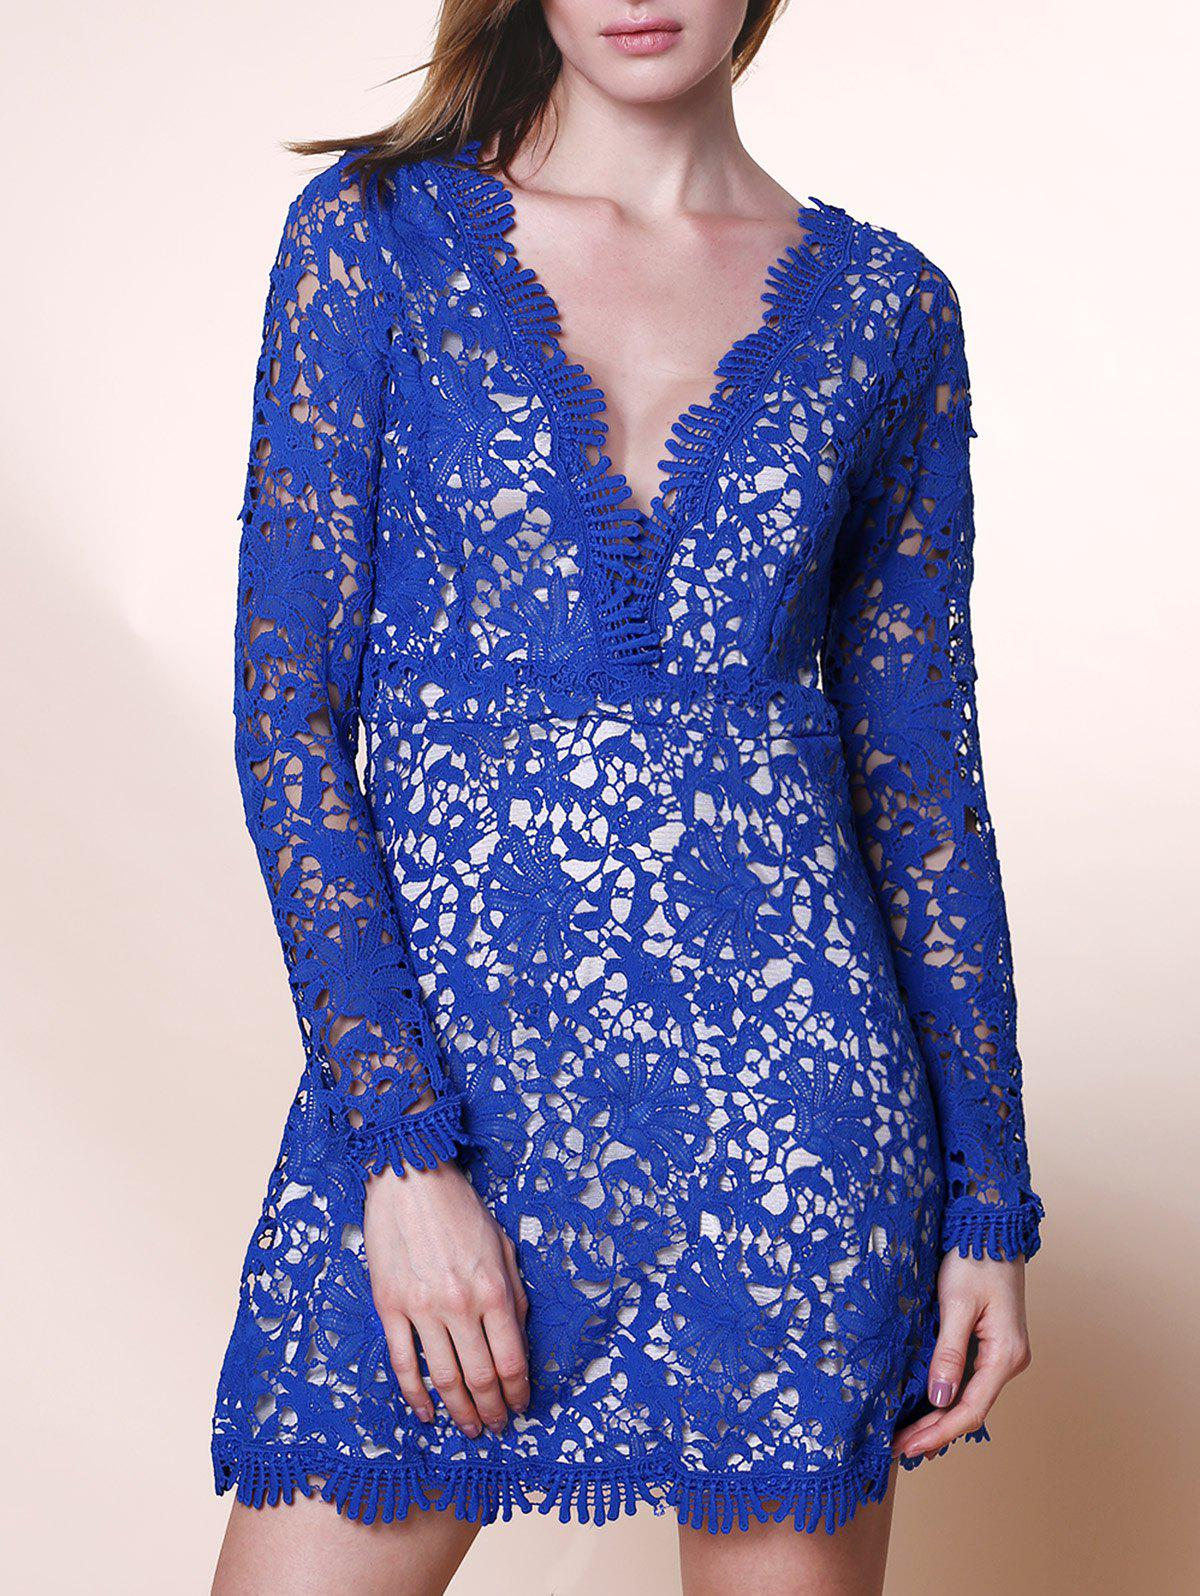 Elegant Cut Out Plunging Neck Long Sleeve Solid Color Lace Women's Dress - BLUE S